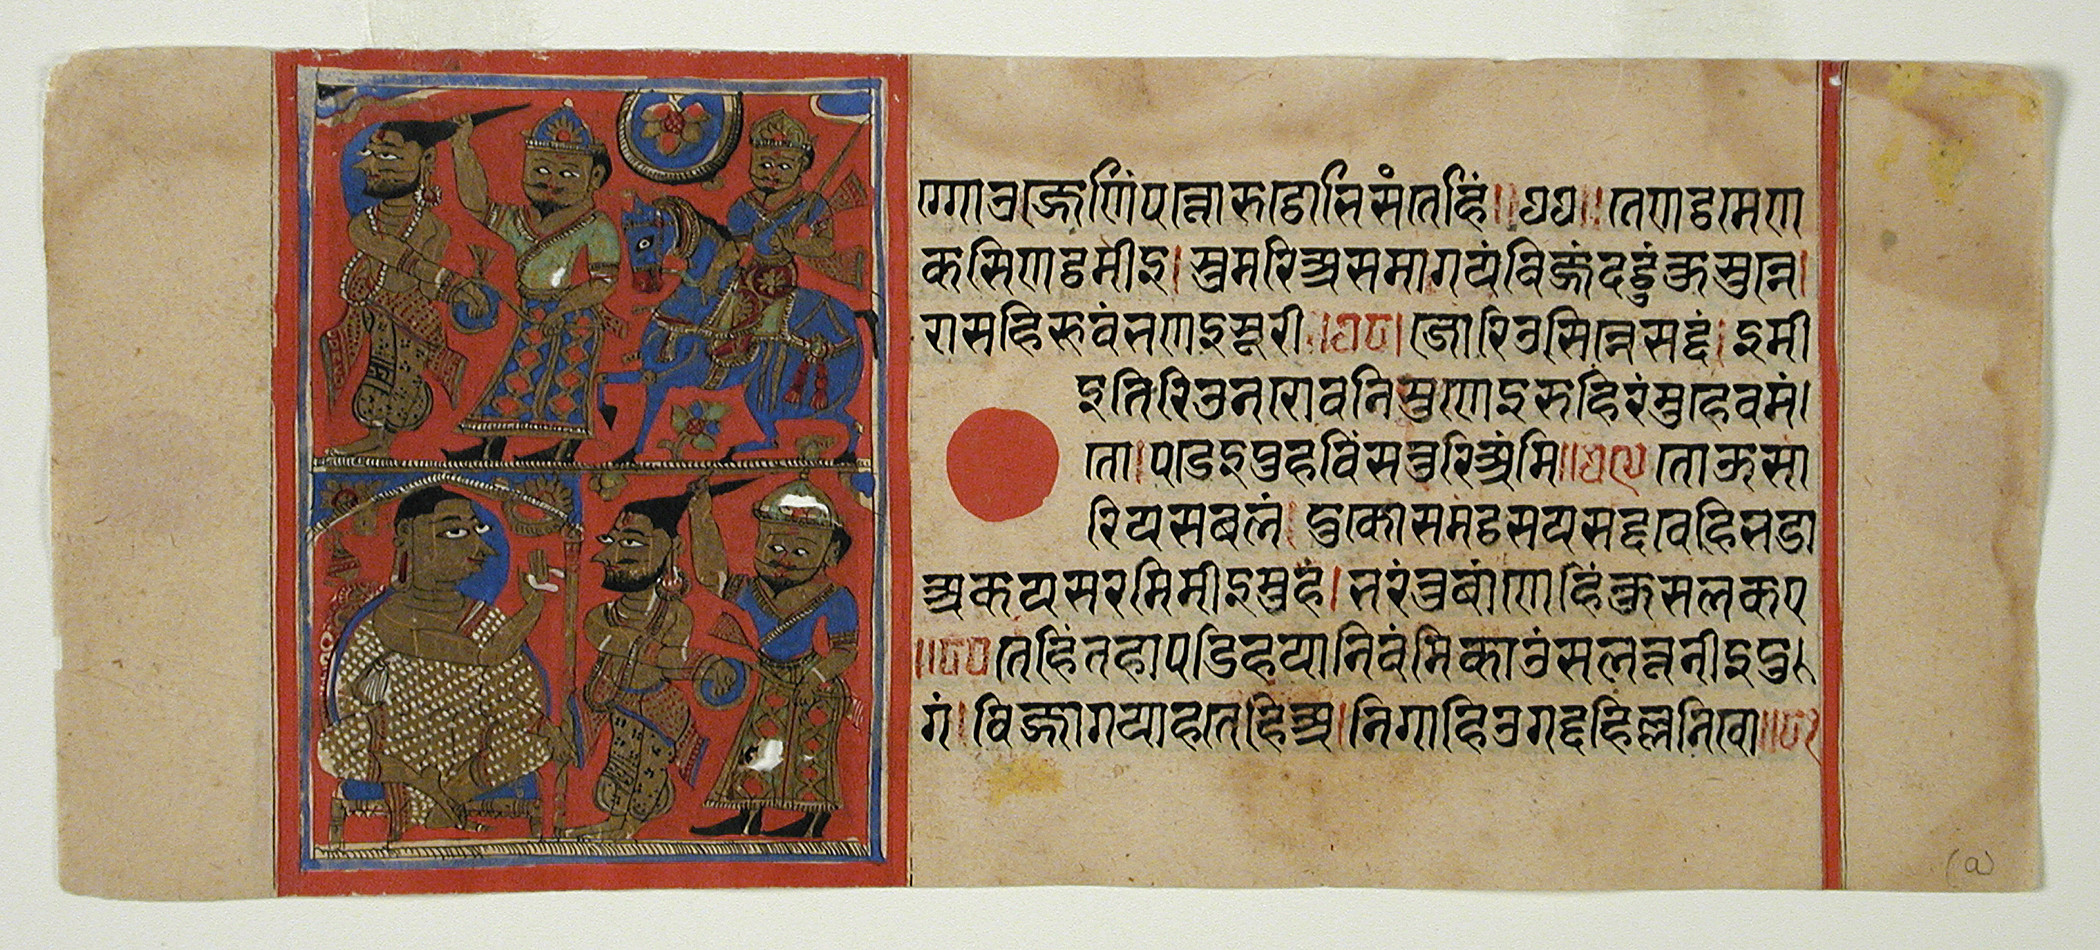 Manuscript with Indian calligraphy and scene of captured king